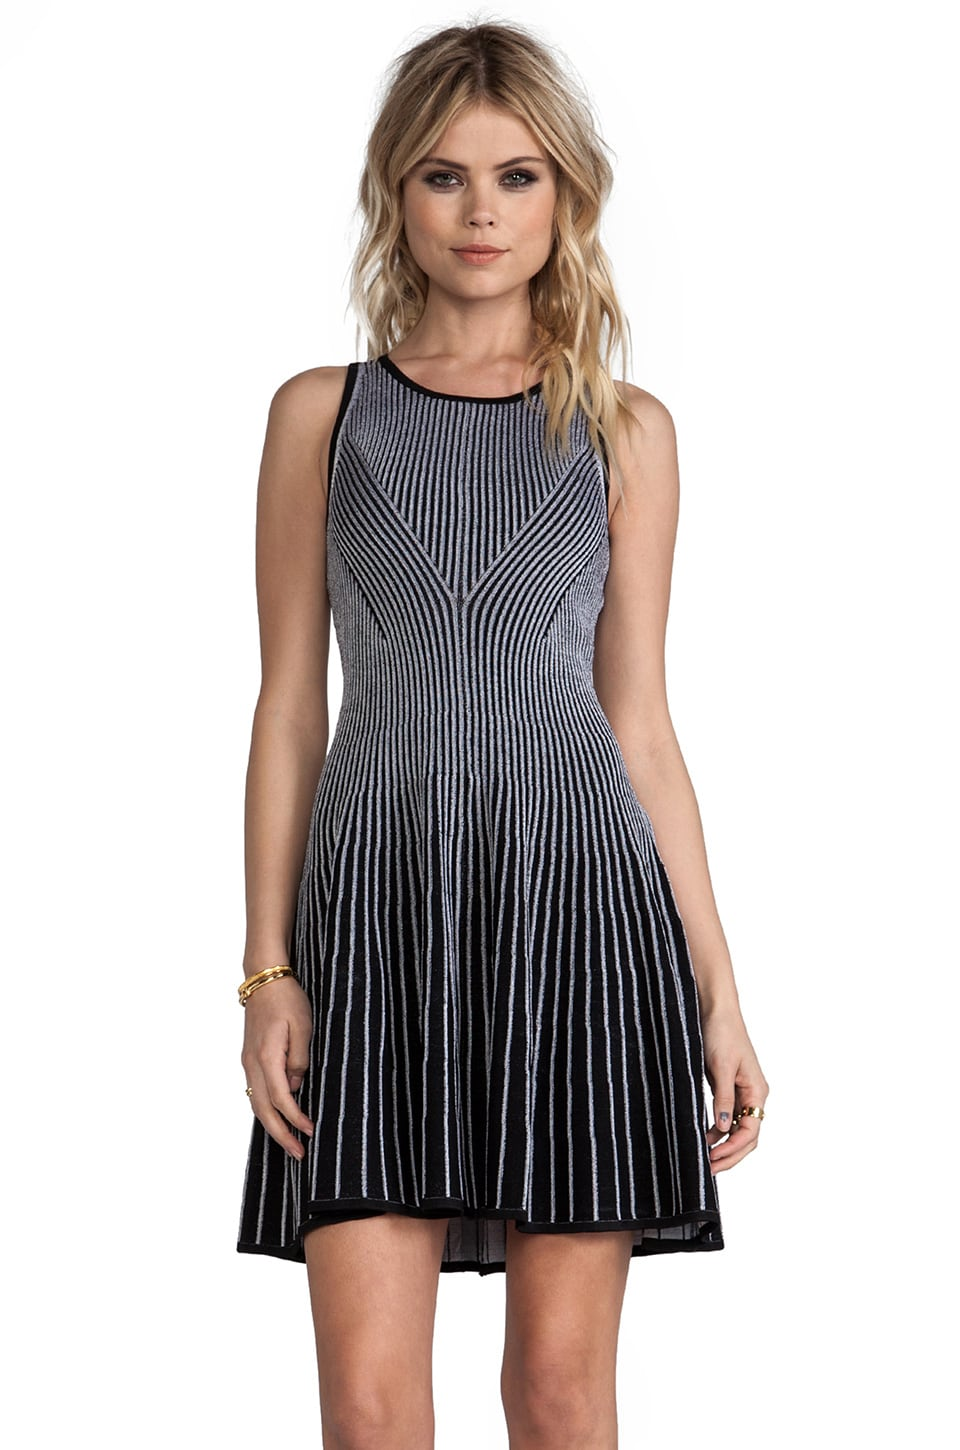 MILLY Knit Two-Toned Rib Stretch Dress in Black/White